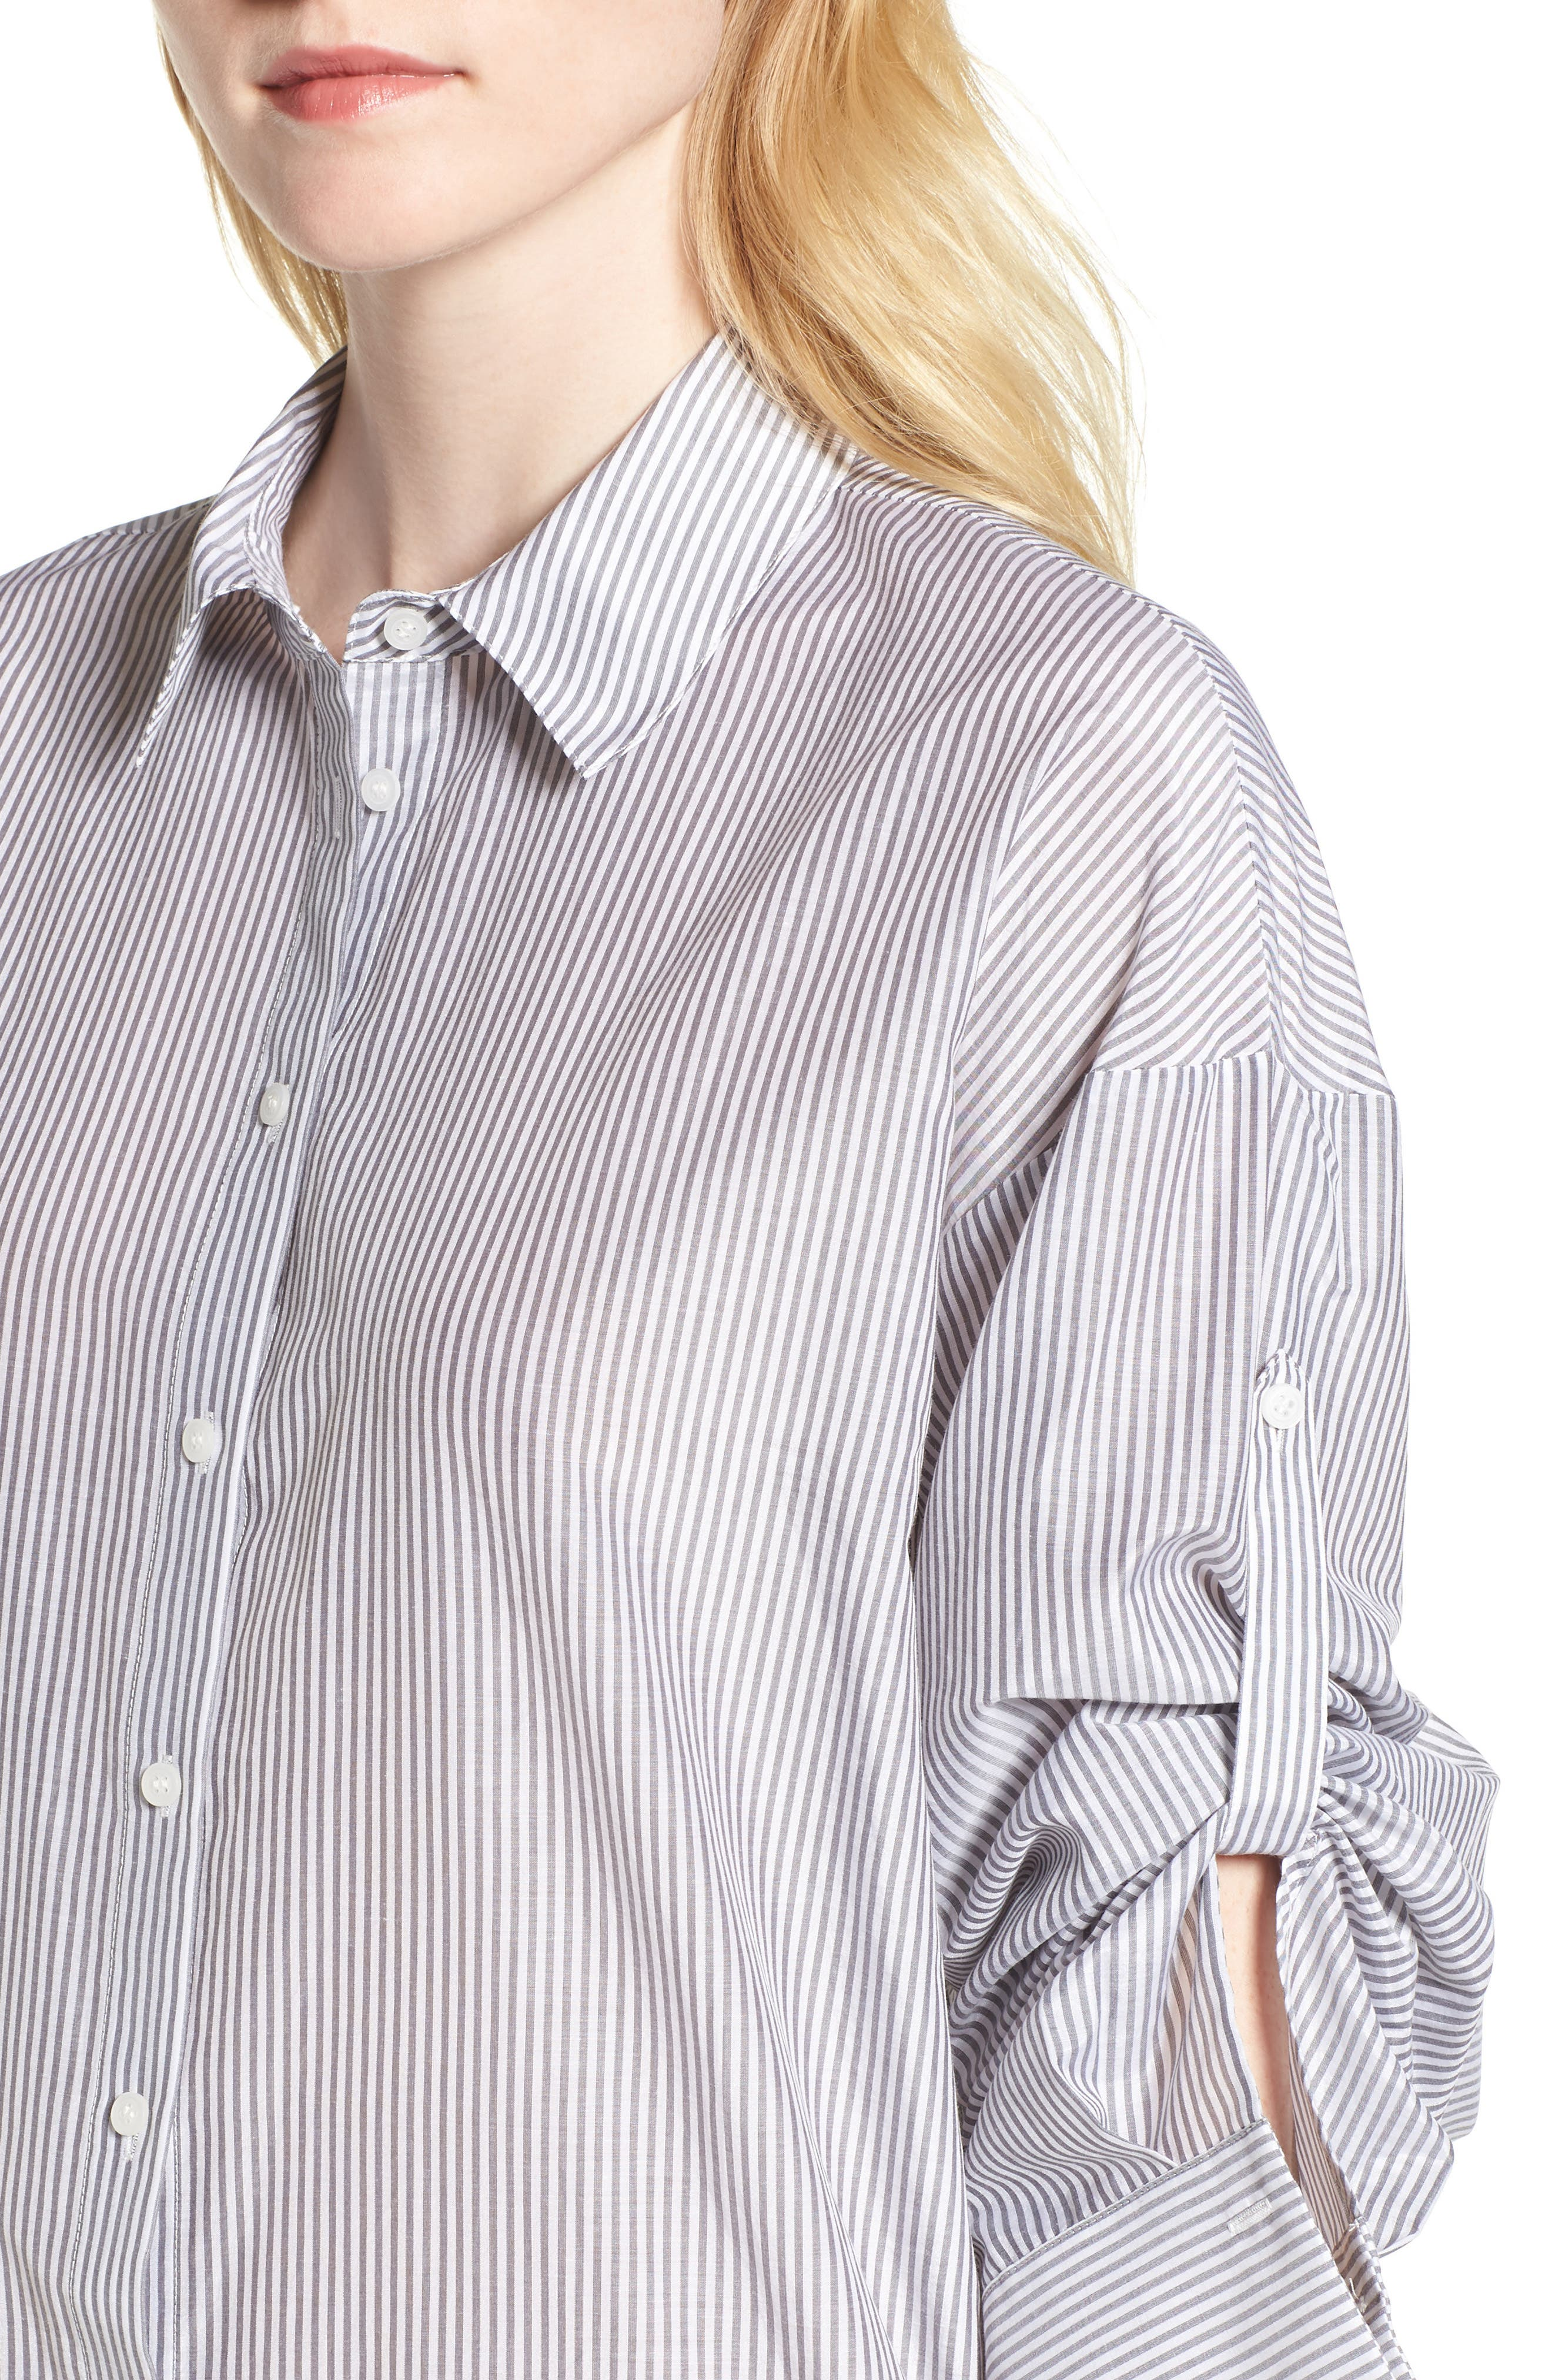 Stripe Cotton & Silk Shirtdress,                             Alternate thumbnail 4, color,                             020